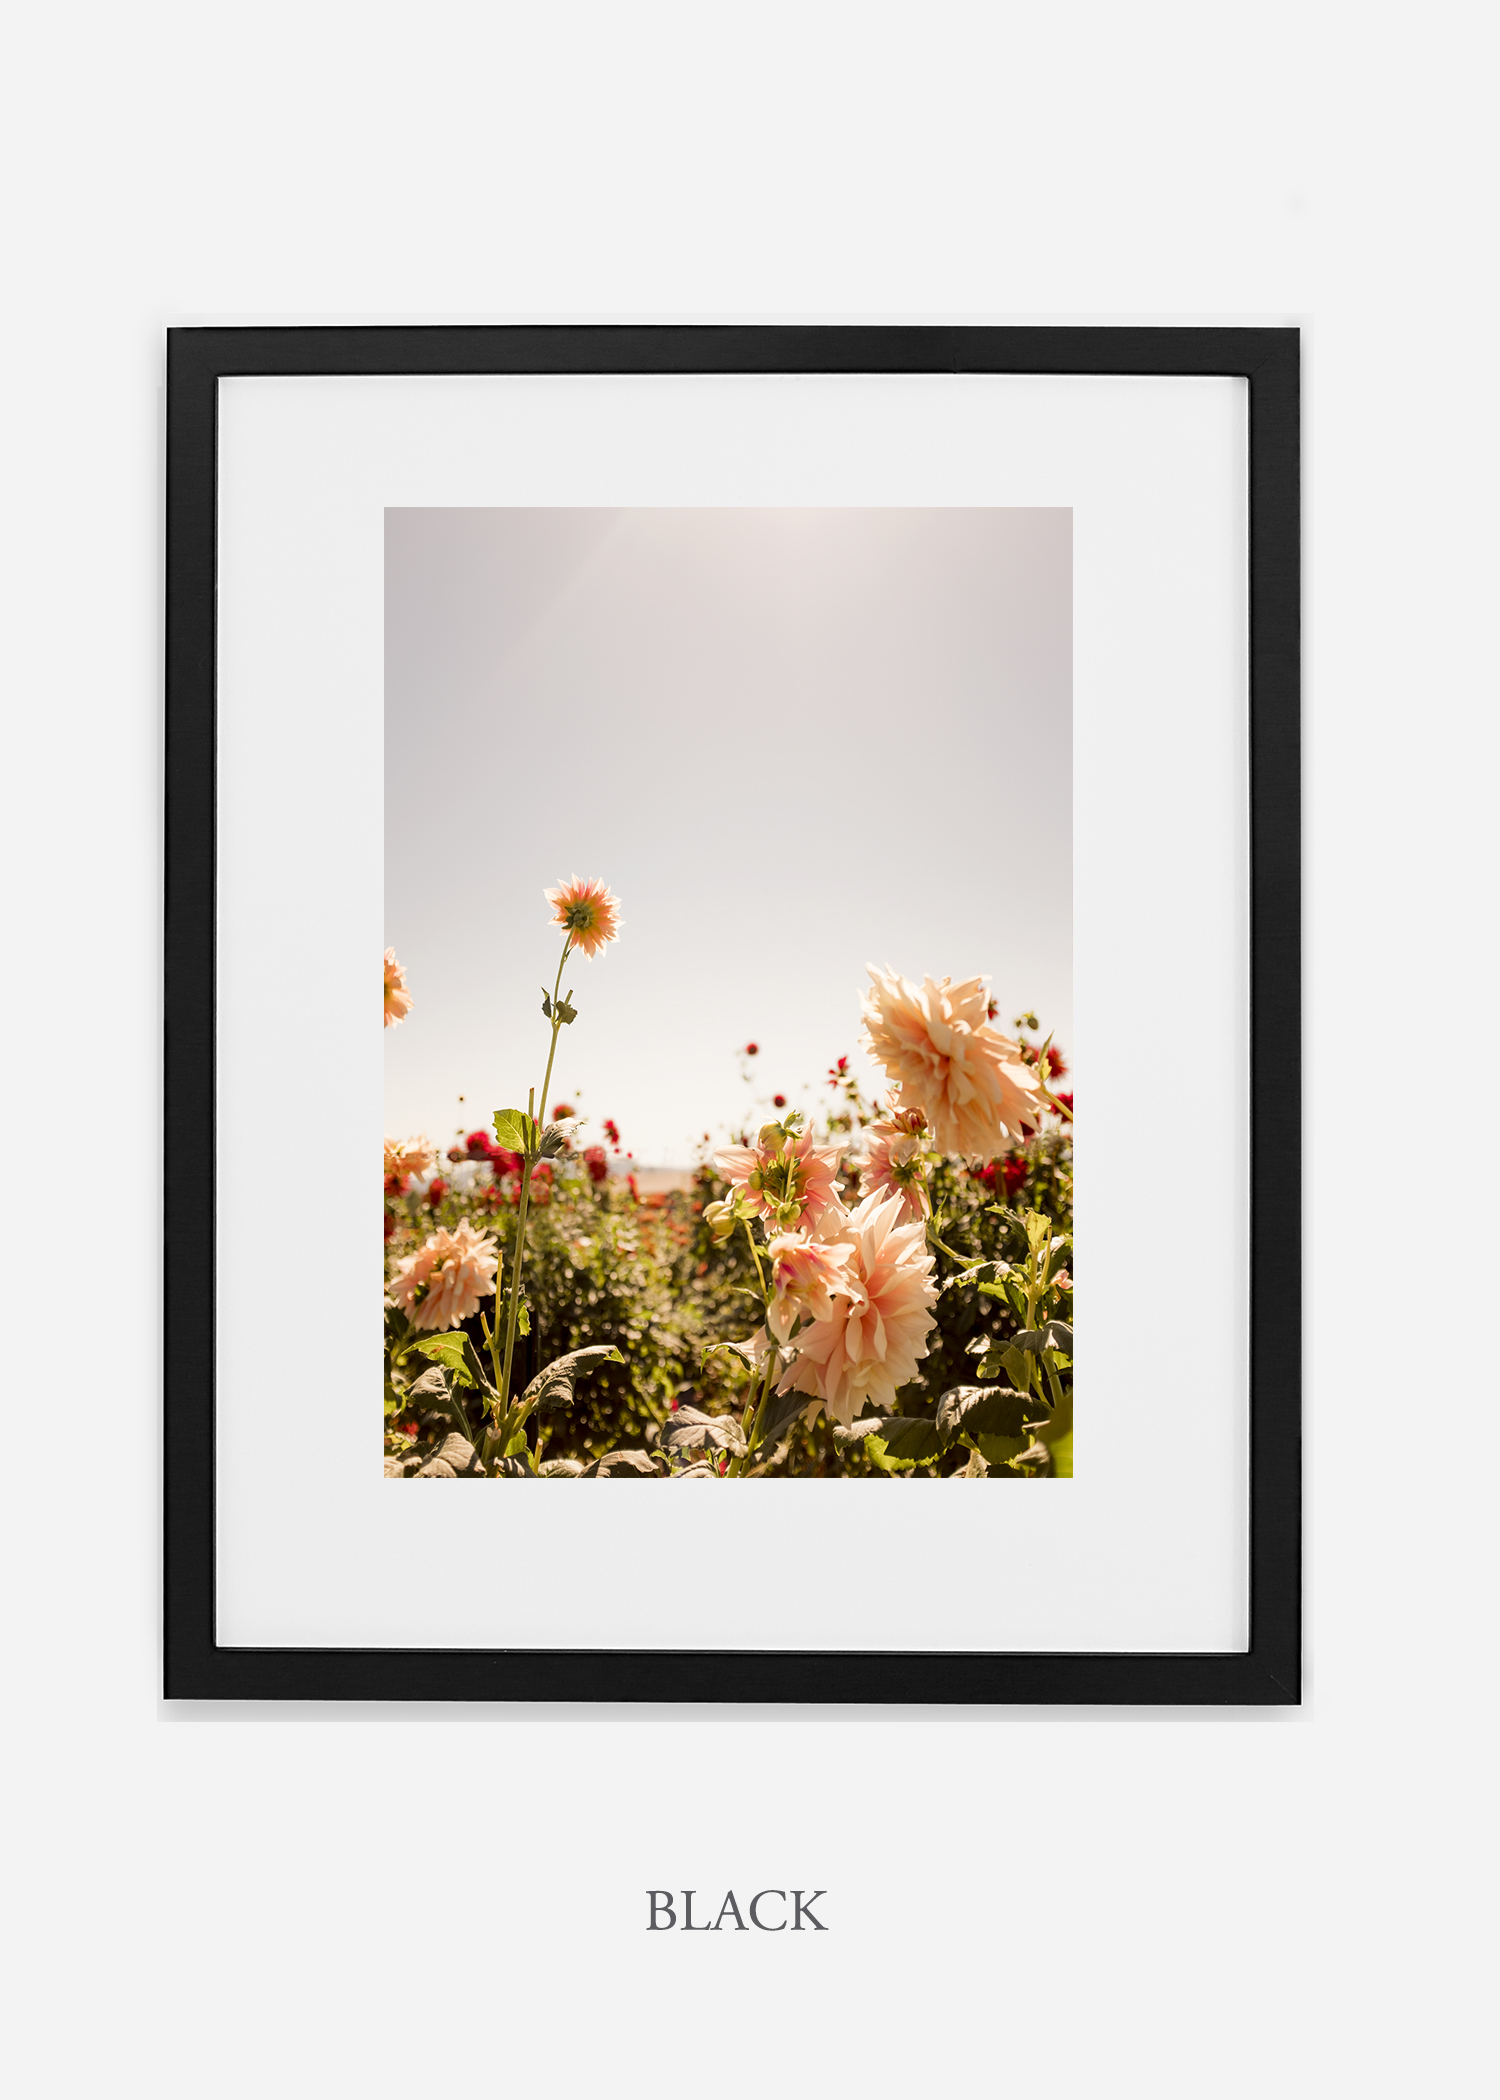 DahliaNo.6-black-frame-mat-interior-design-botanical-print-art-wilder-california-wilder-paper.jpg